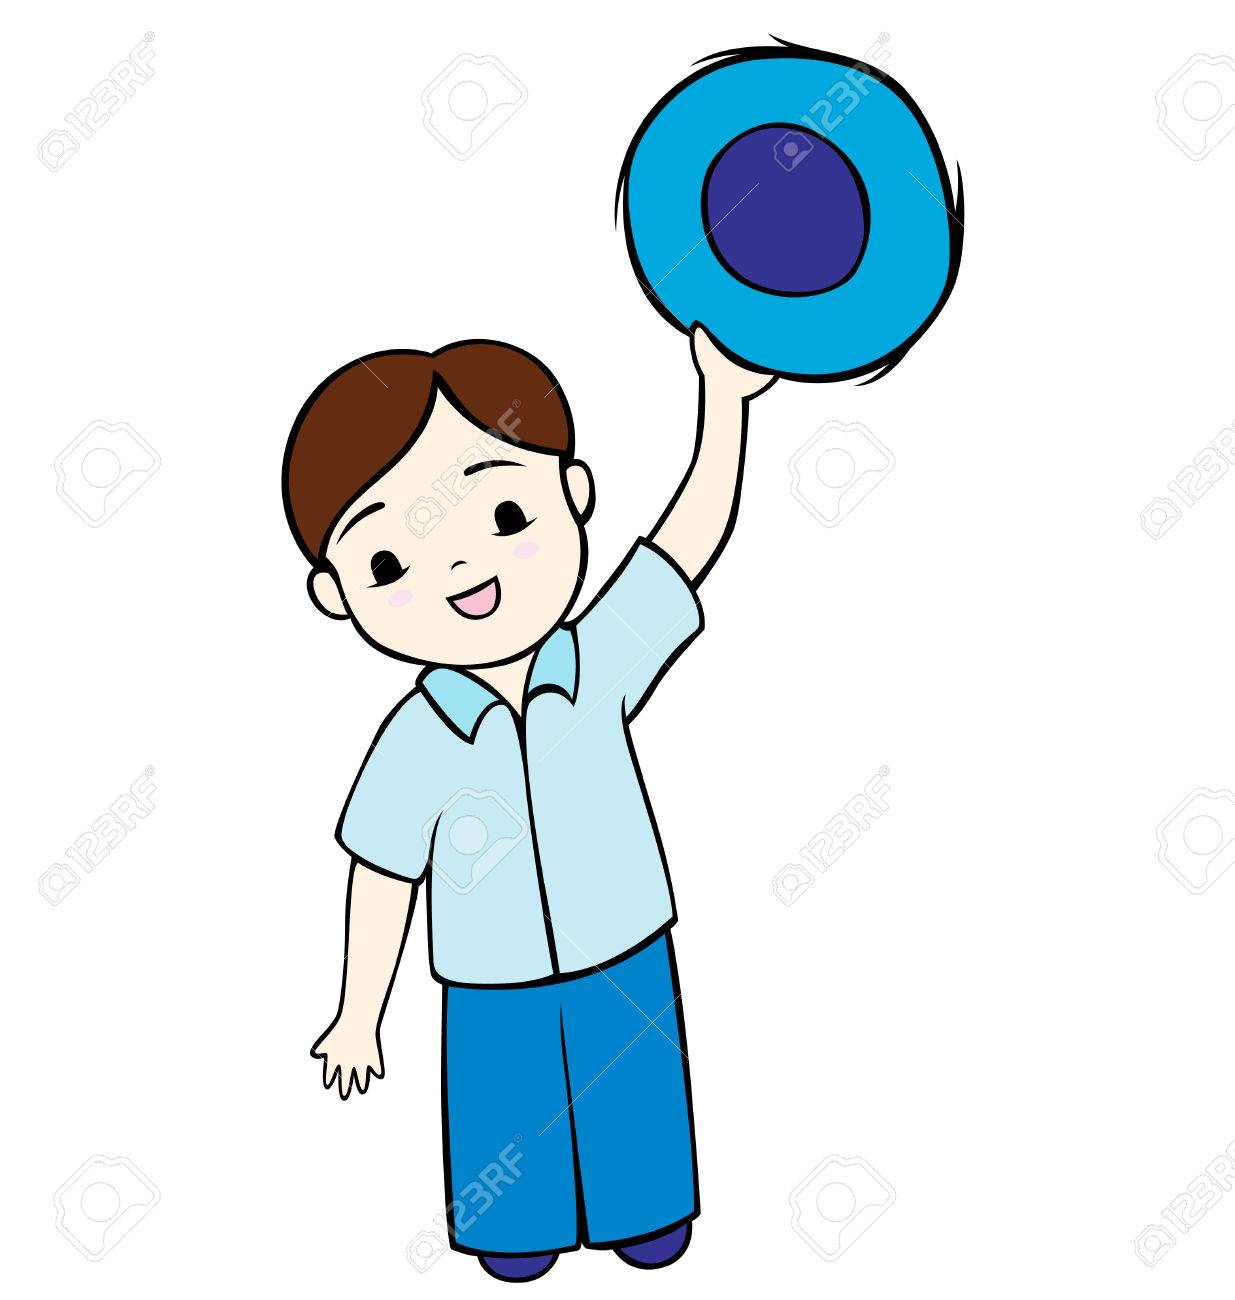 A little boy holding his hat up and waving. Stock Vector - 8209158